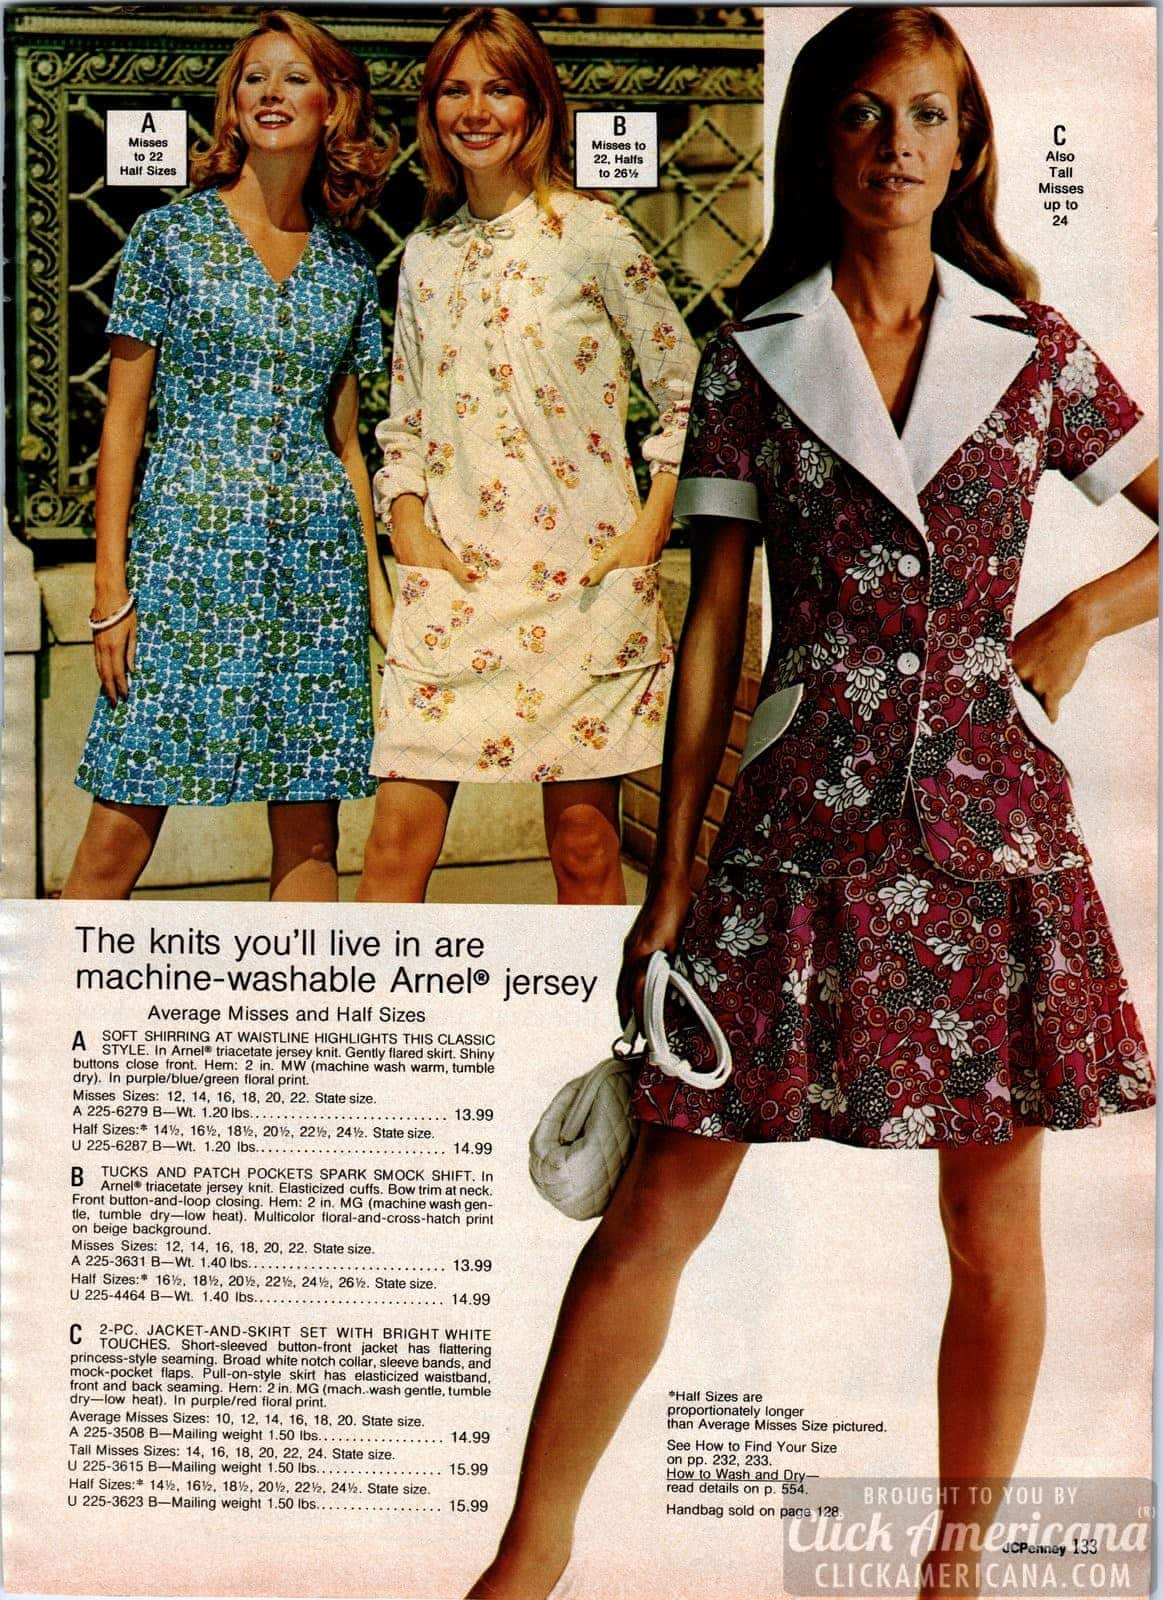 Jersey print dresses - Button-up jacket and skirt set with wide white collars and smock shifts